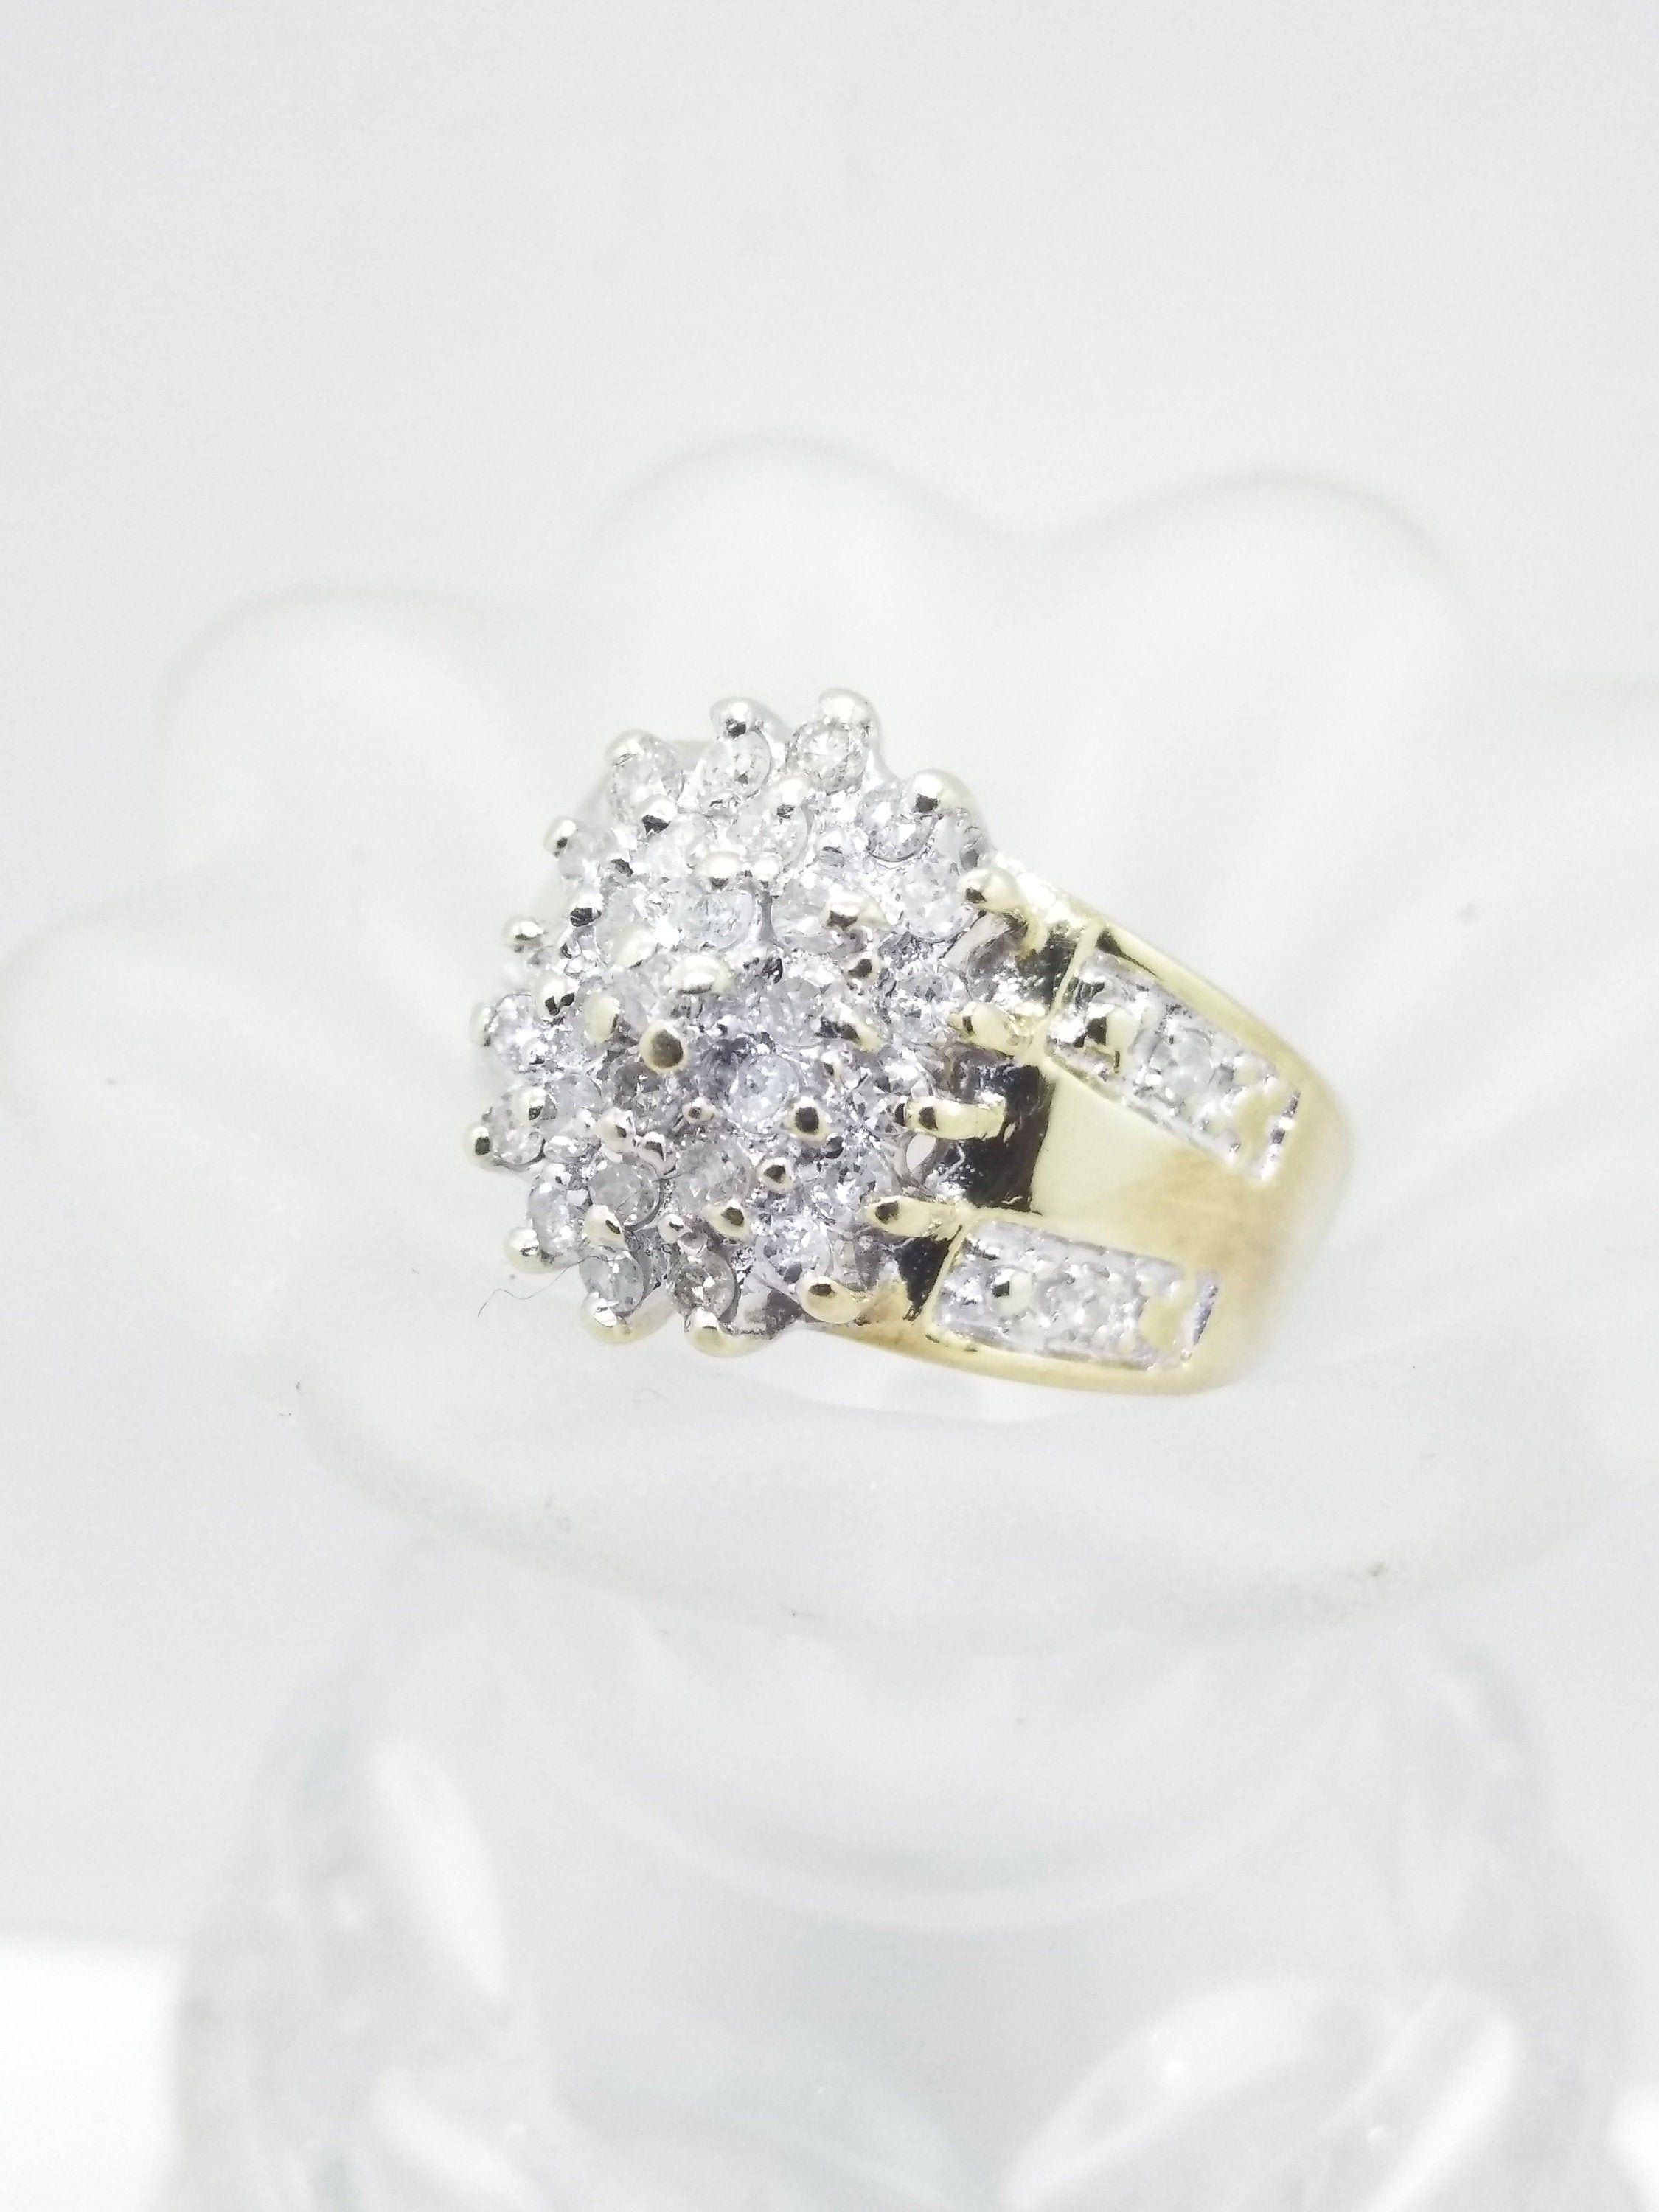 Size 7 10k Diamond Cluster Ring Solid 10k Gold Ring Etsy In 2020 10k Gold Ring Etsy Gold Ring Diamond Cluster Ring